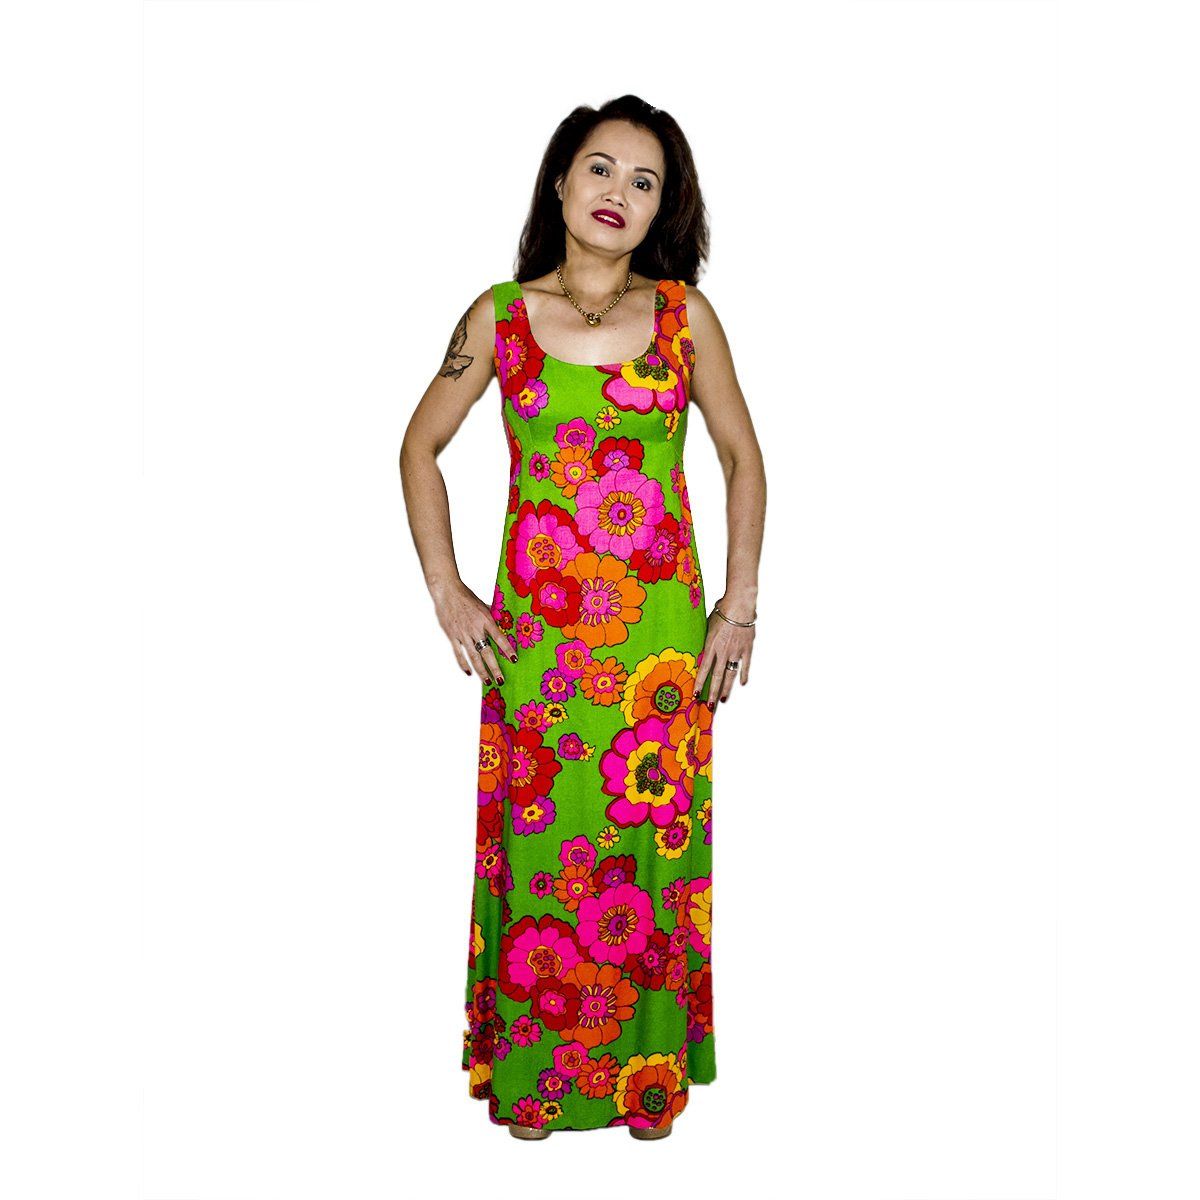 970s Floral Maxi Dress, Sleeveless with Rhinestone Buttons